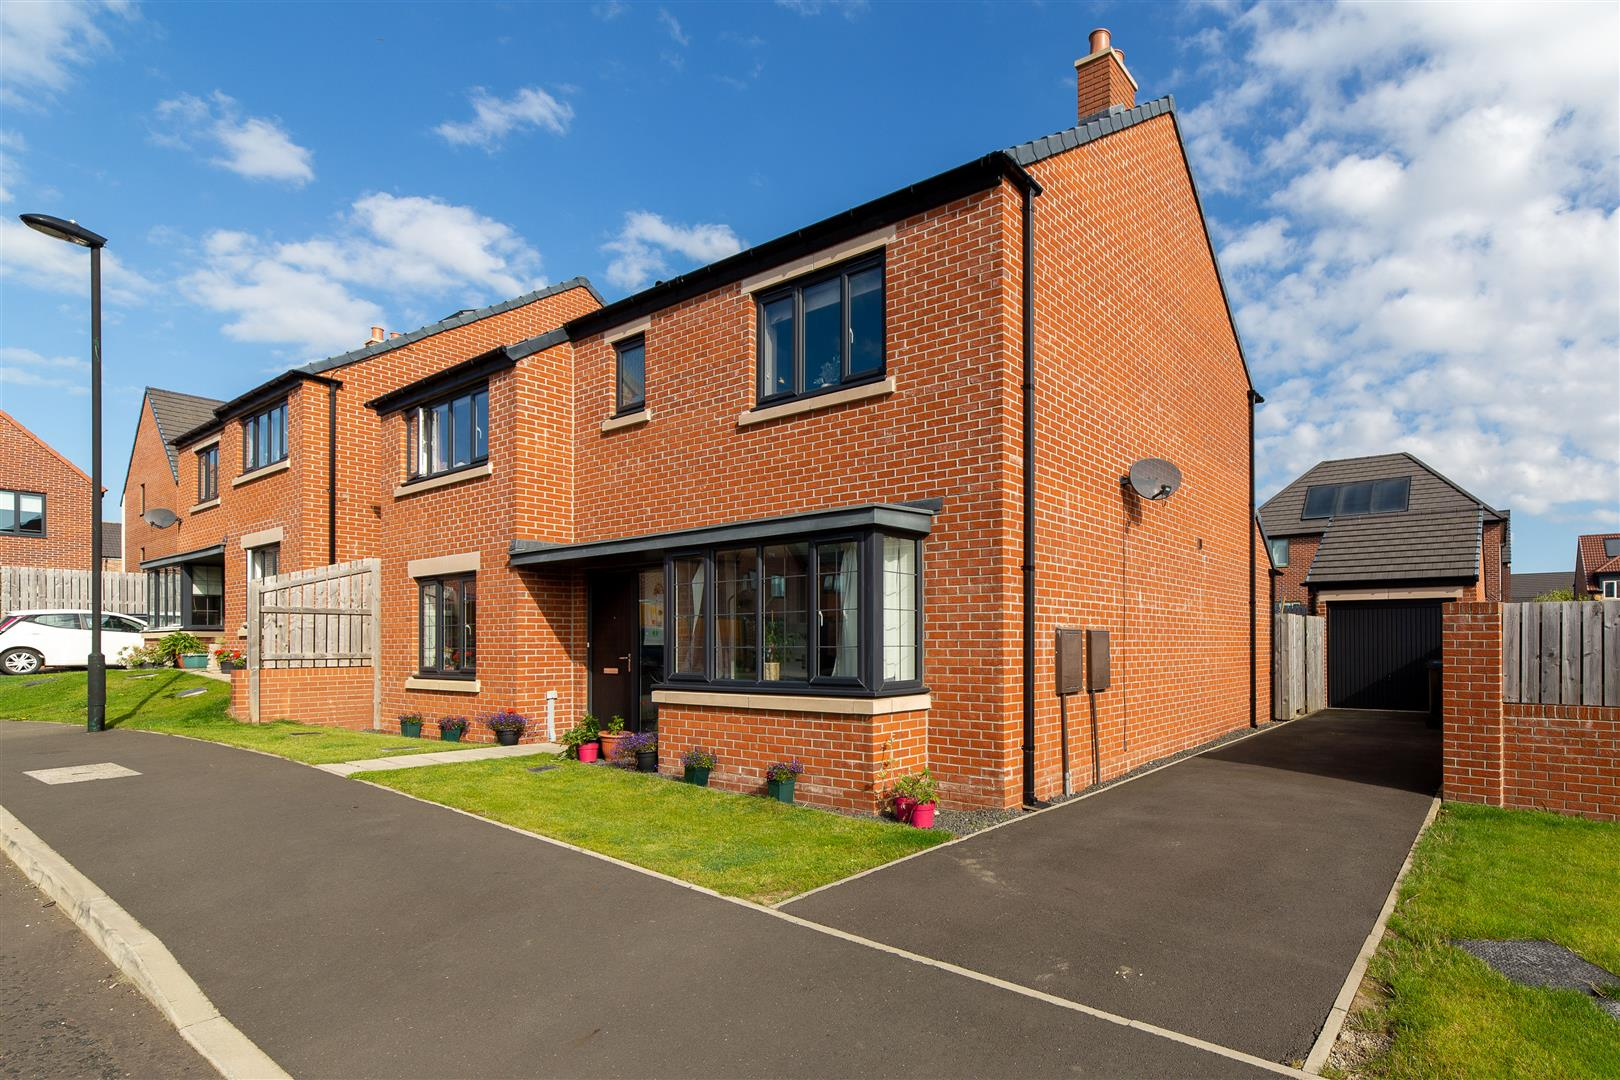 4 bed detached house for sale in Newcastle Upon Tyne, NE13 6NN, NE13